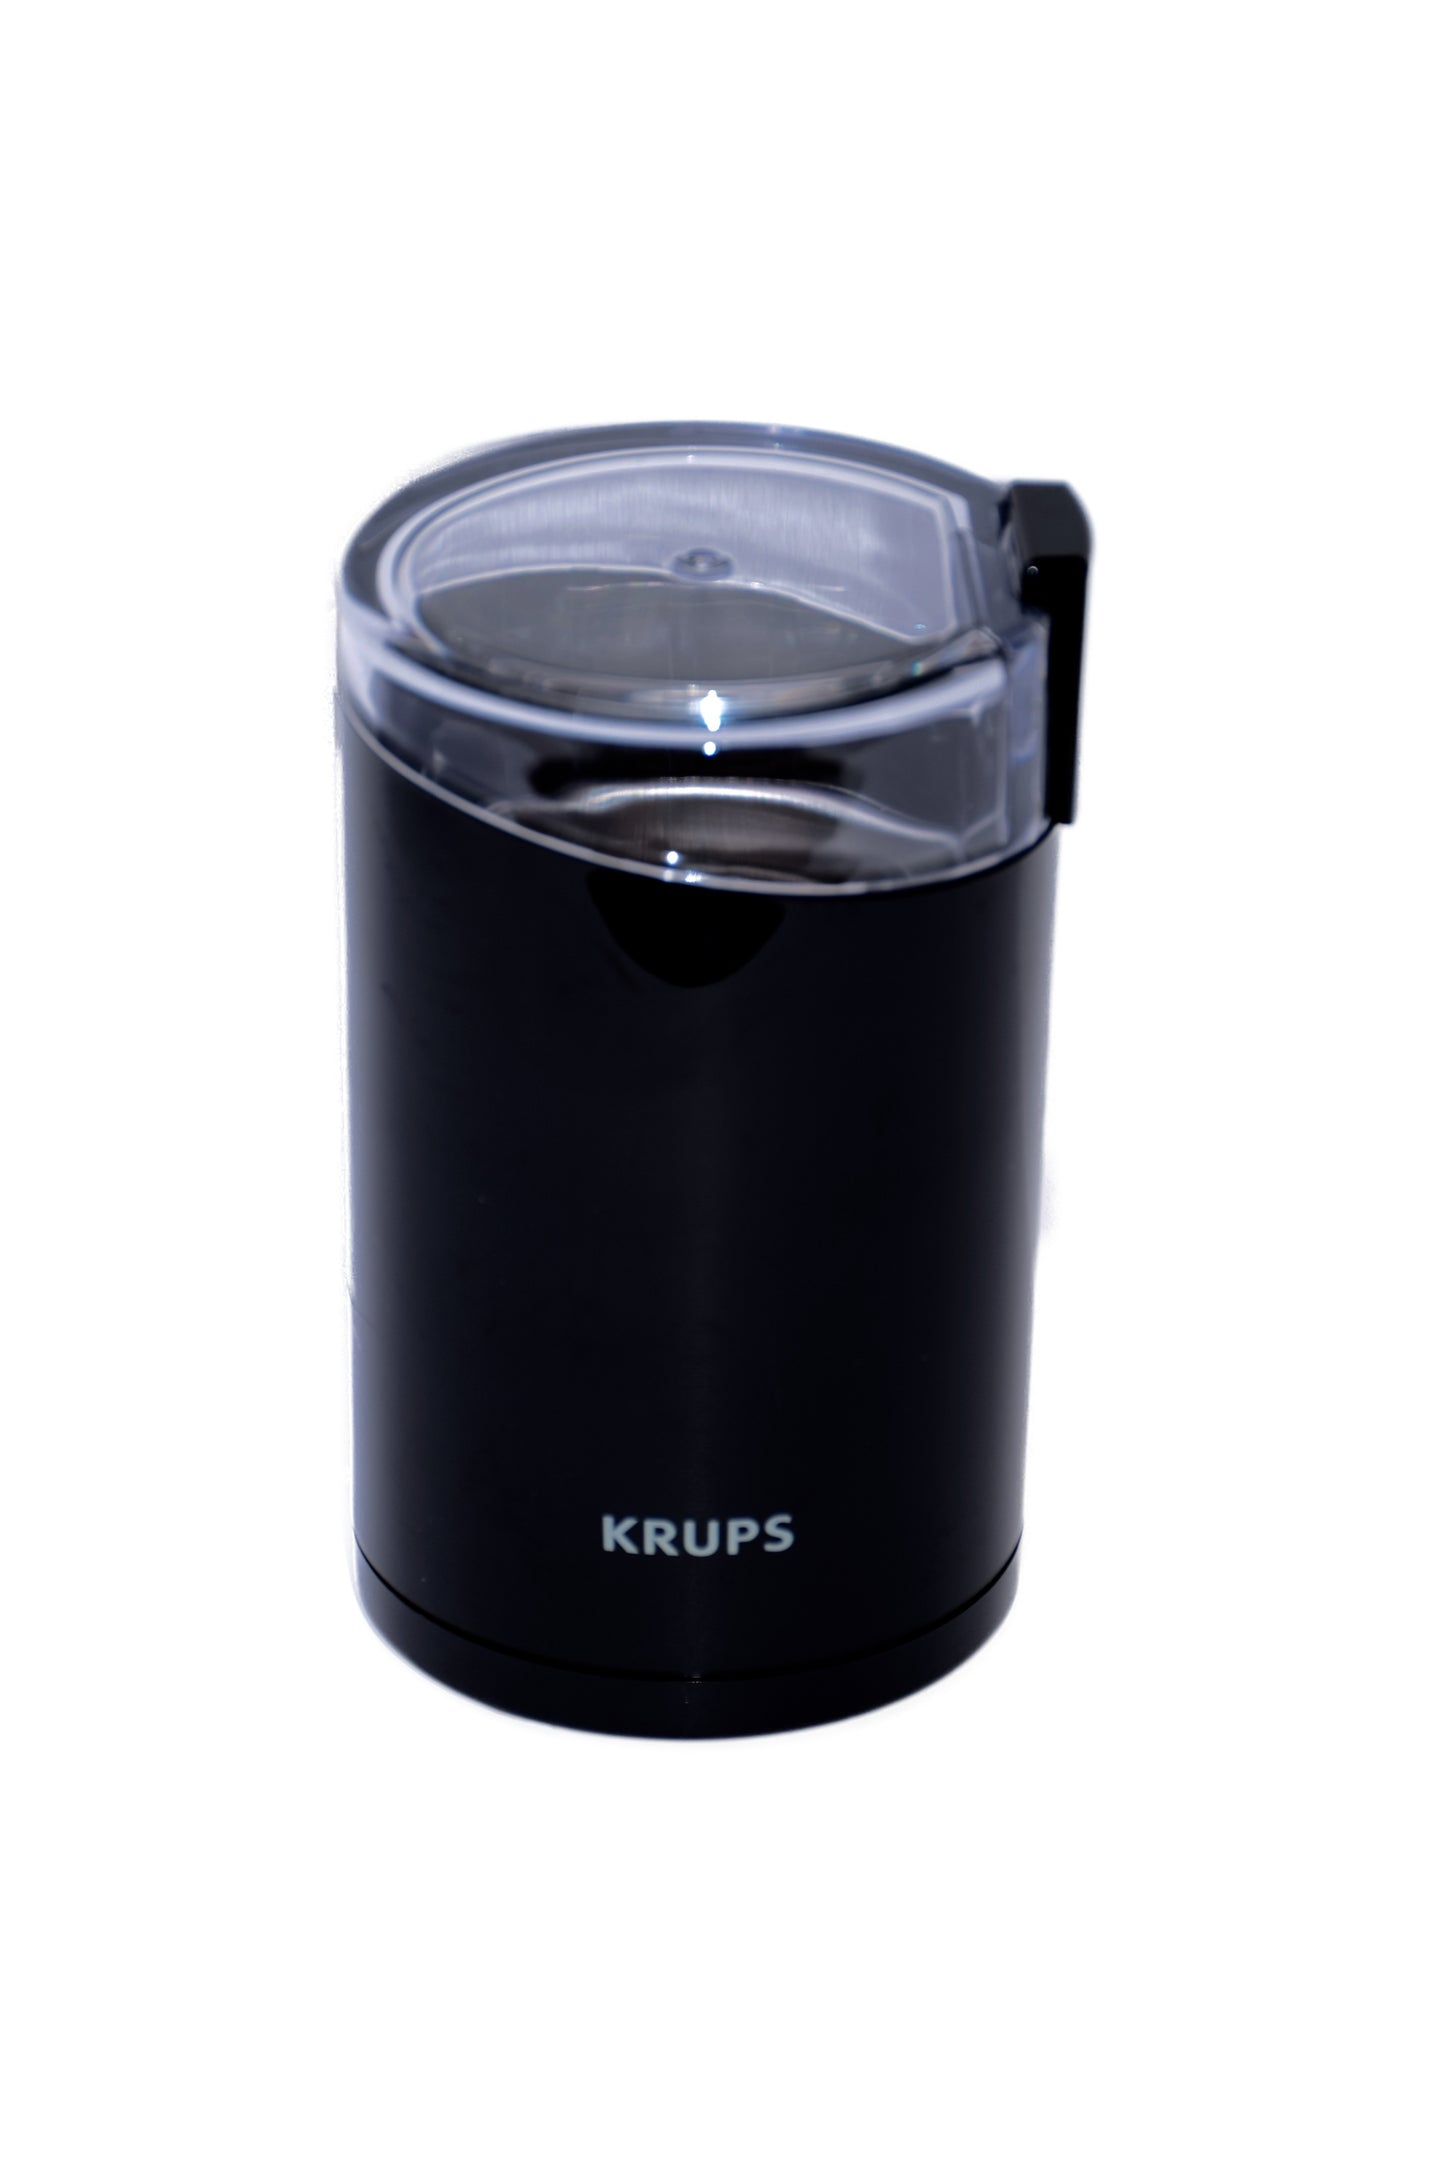 Krups 3 oz Electric Coffee Grinder